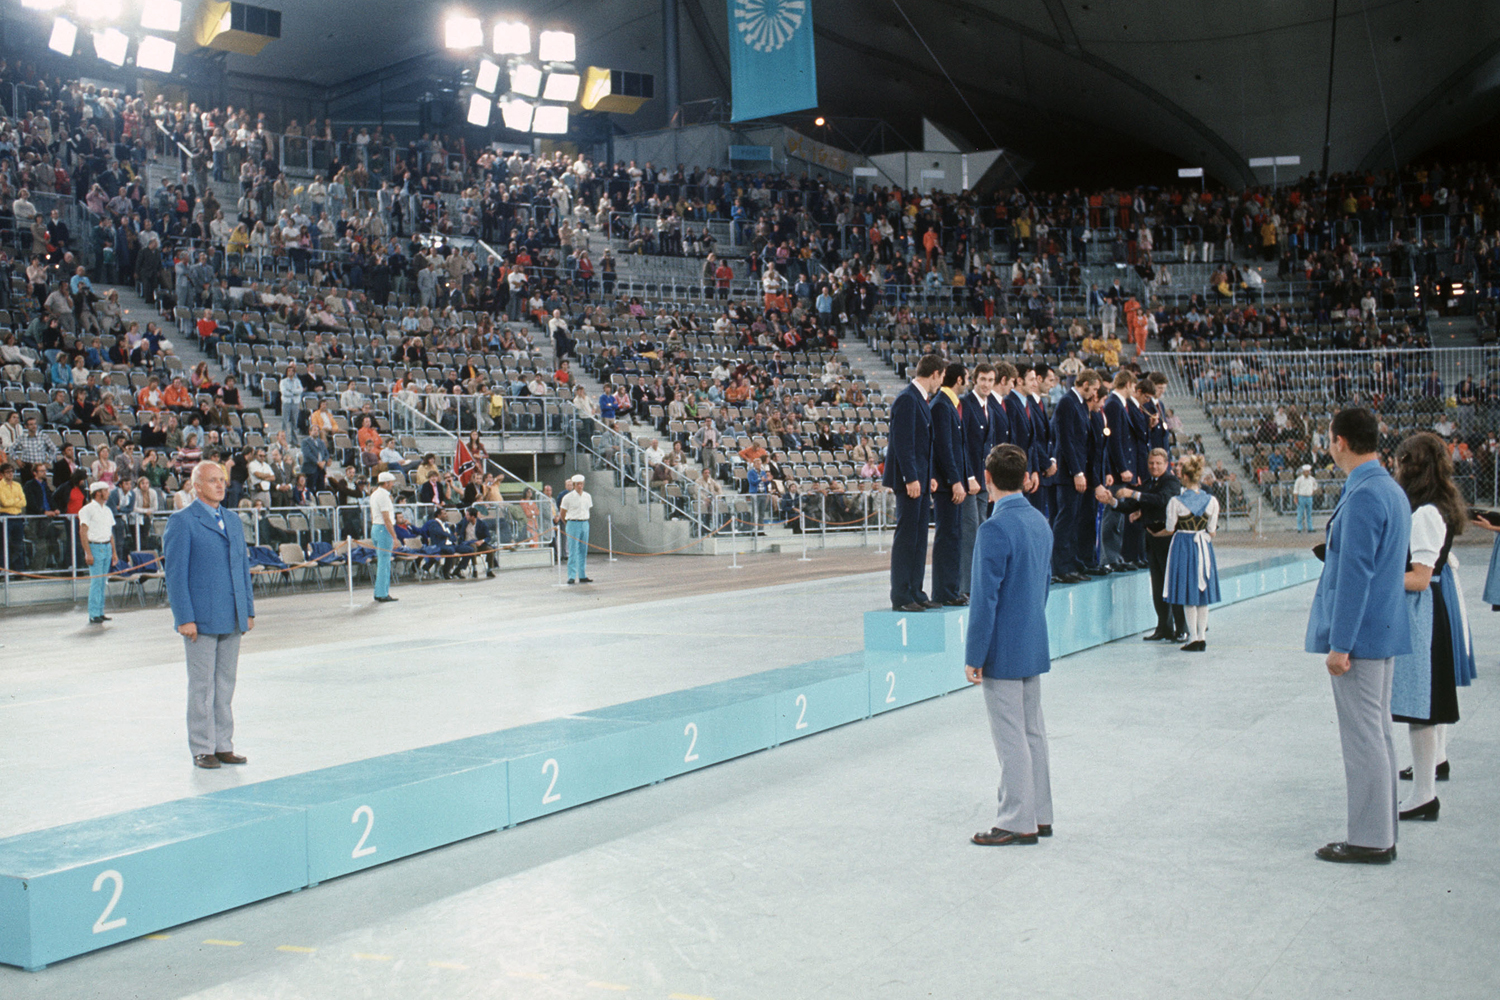 Incredible Photos From the Summer Olympics Through the Years